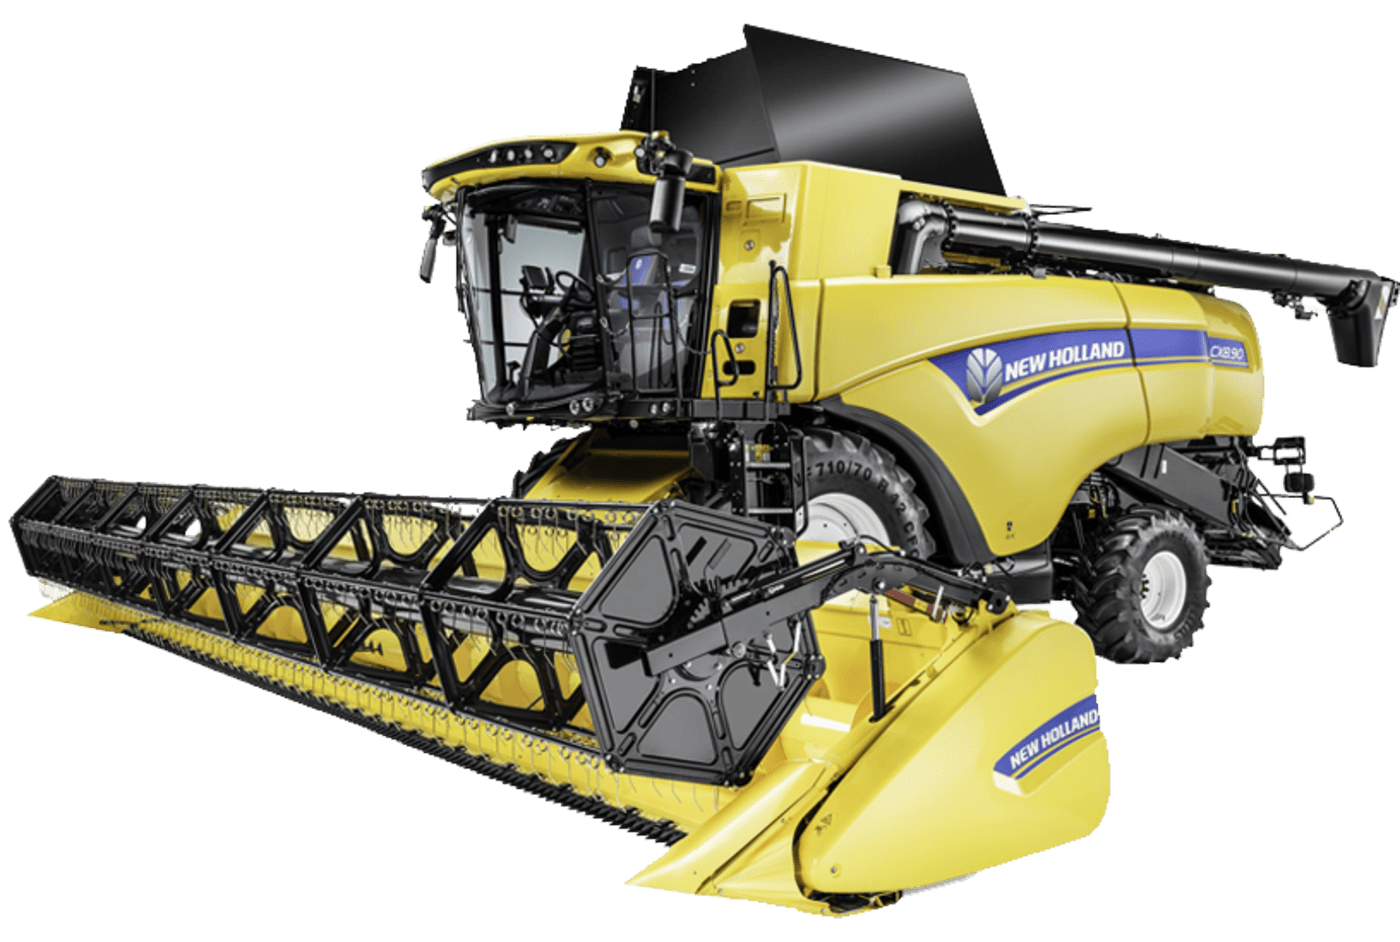 Robert D Webster - New Holland Dealer